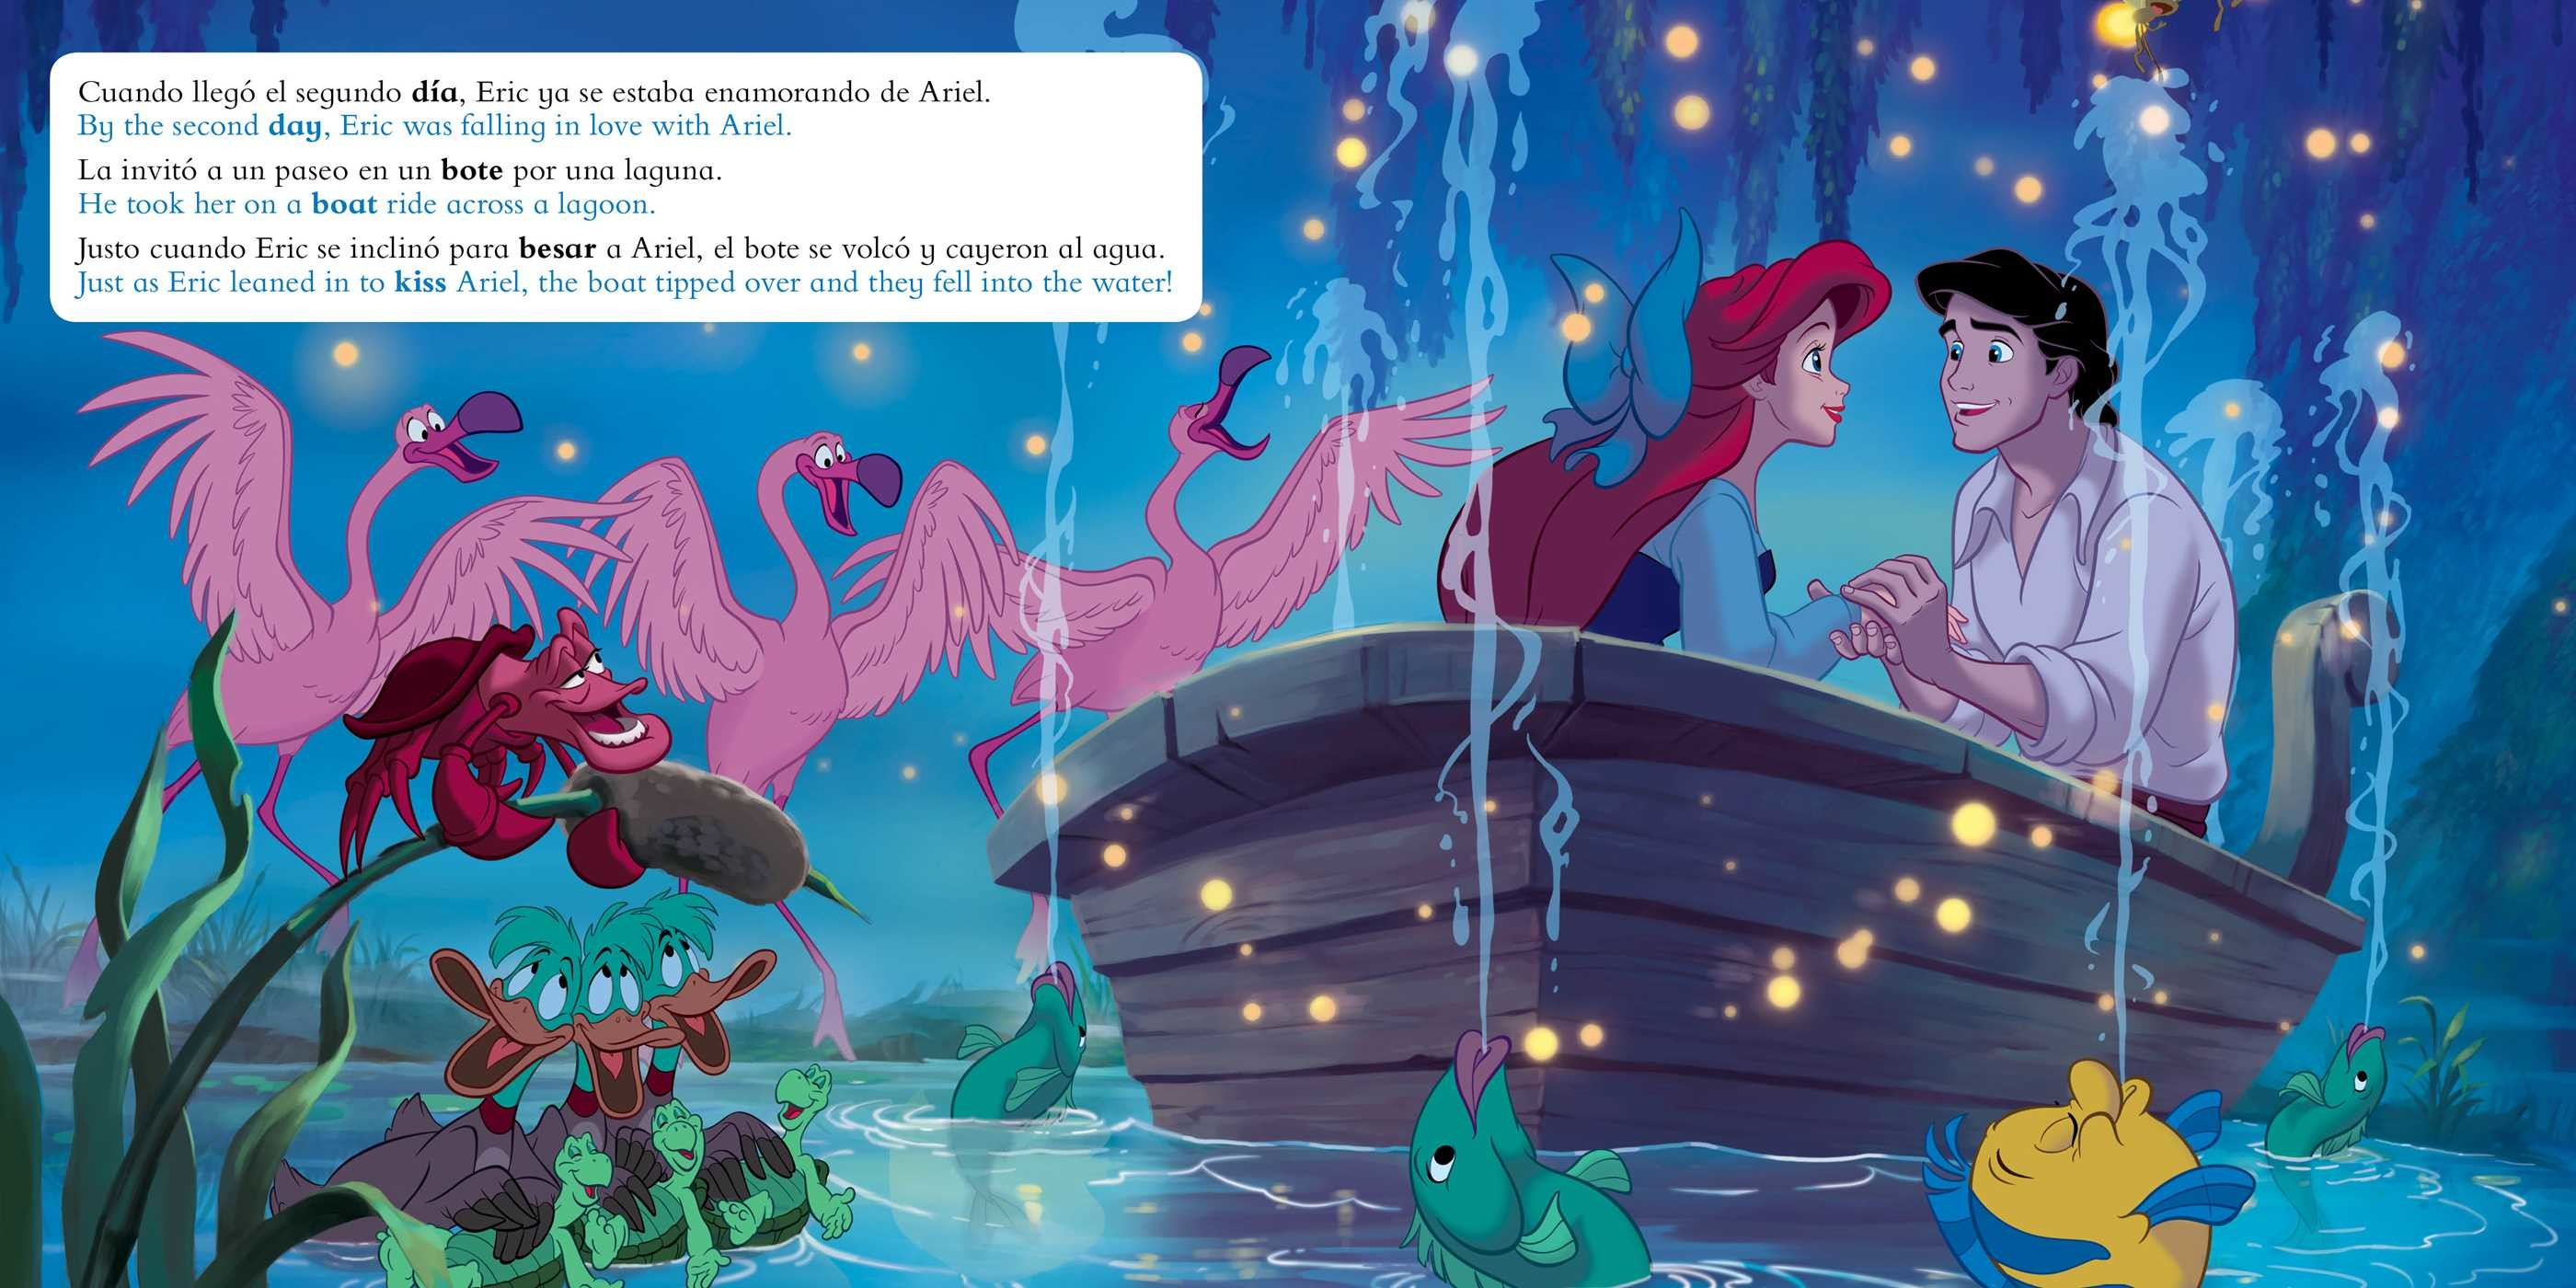 The little mermaid movie storybook libro basado en la pelicula english spanish disney 9781499807967.in03